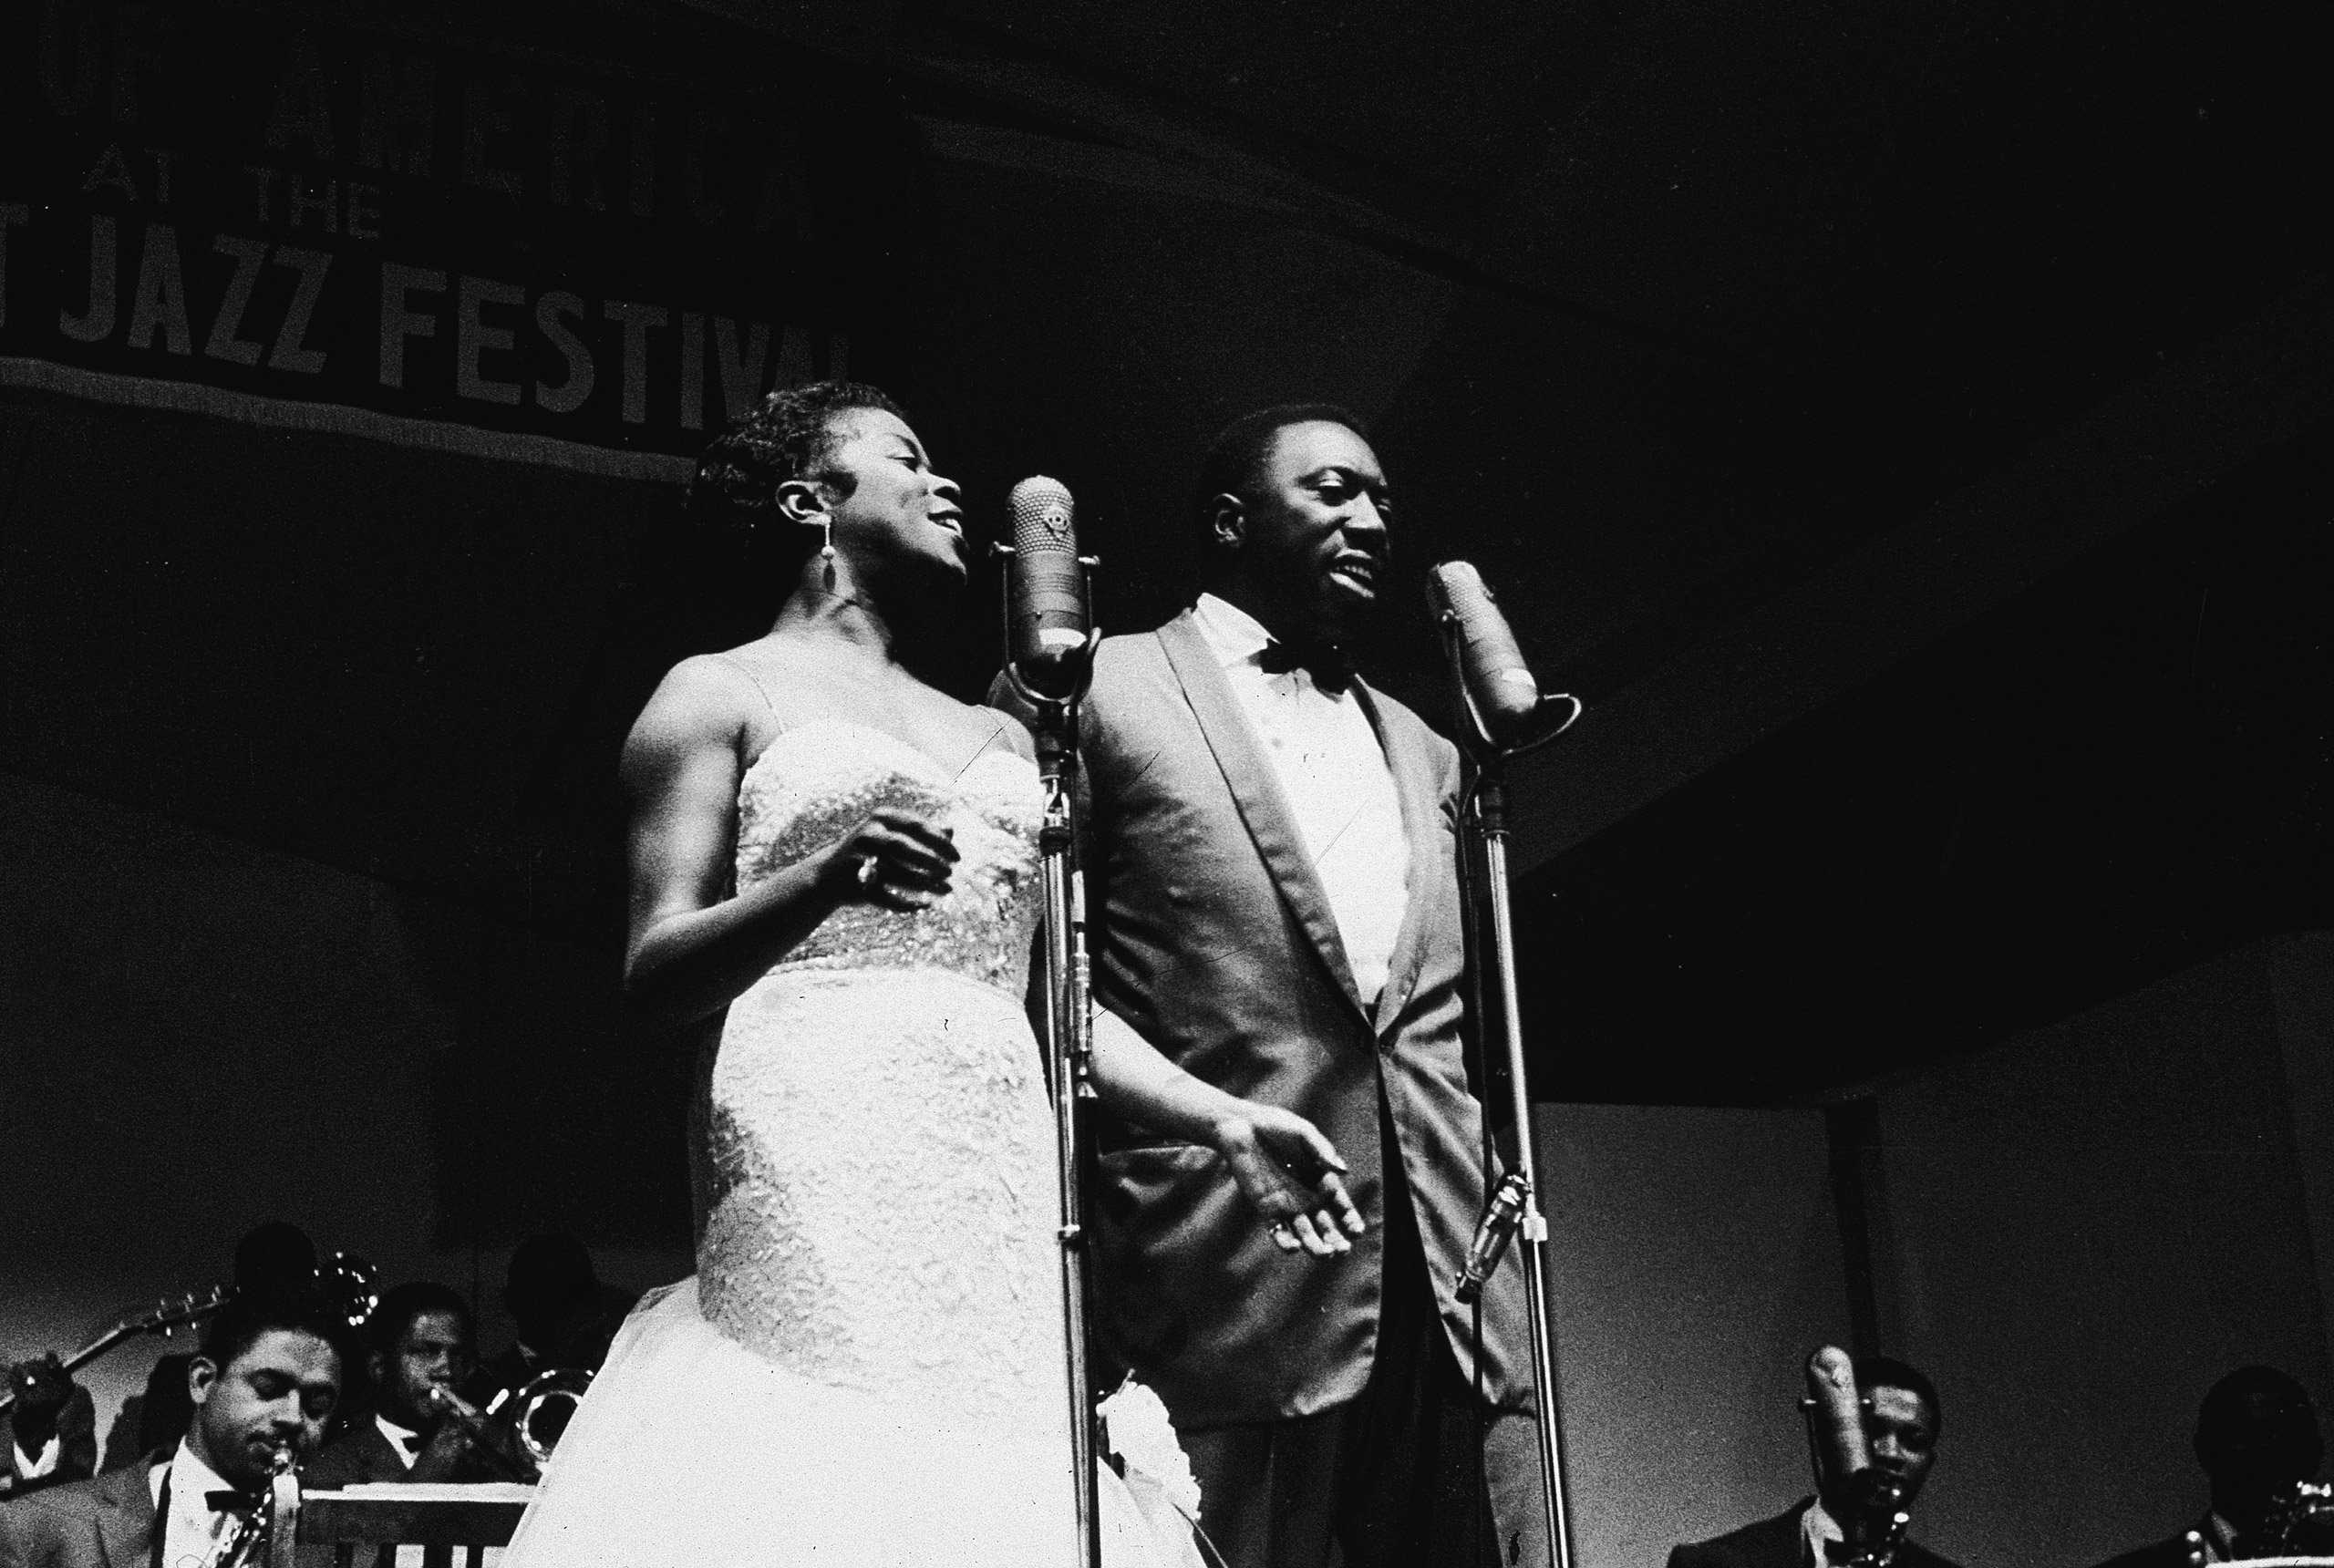 American jazz vocalists Sarah Vaughan (1924 - 1990) (left) and Joe Williams (1918 - 1999) perform with the Count Basie Orchestra at the Newport Jazz Festival, Newport, R.I., July 7, 1957.